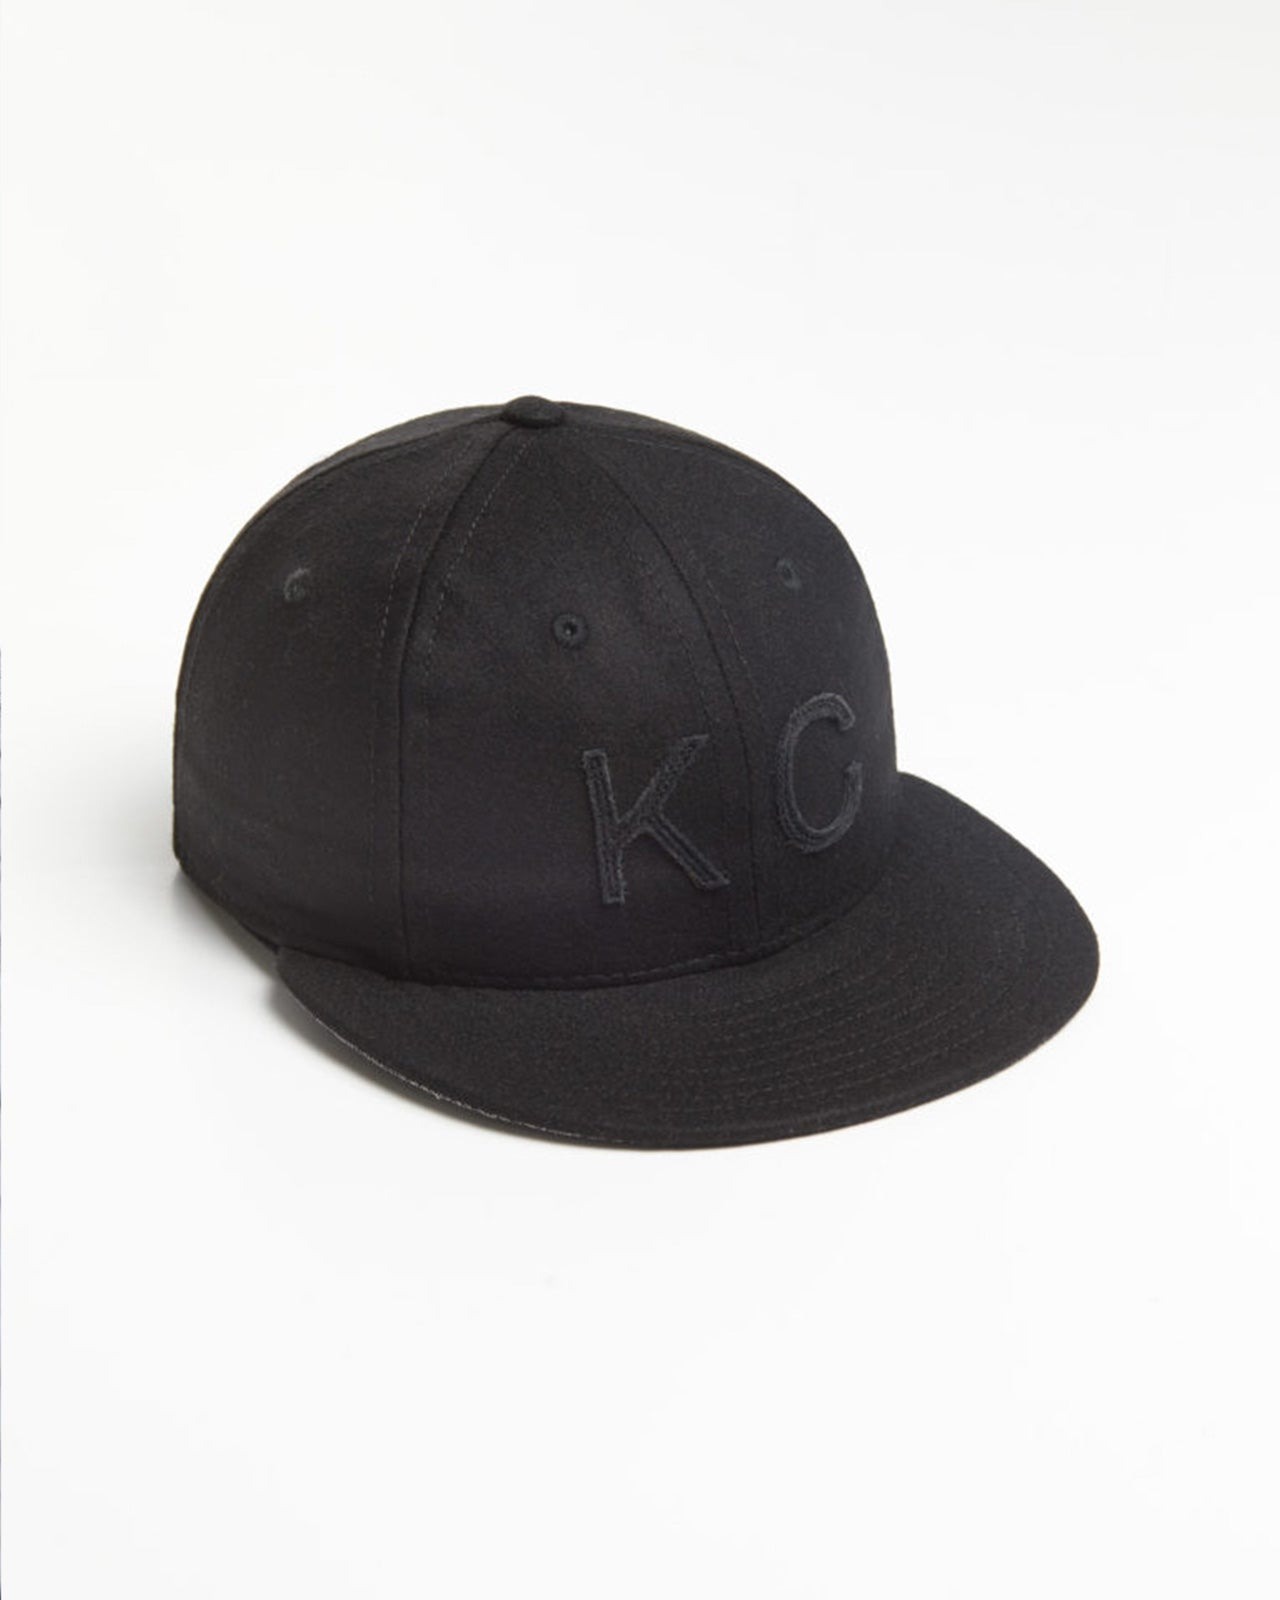 The KC Hat in Black/Black